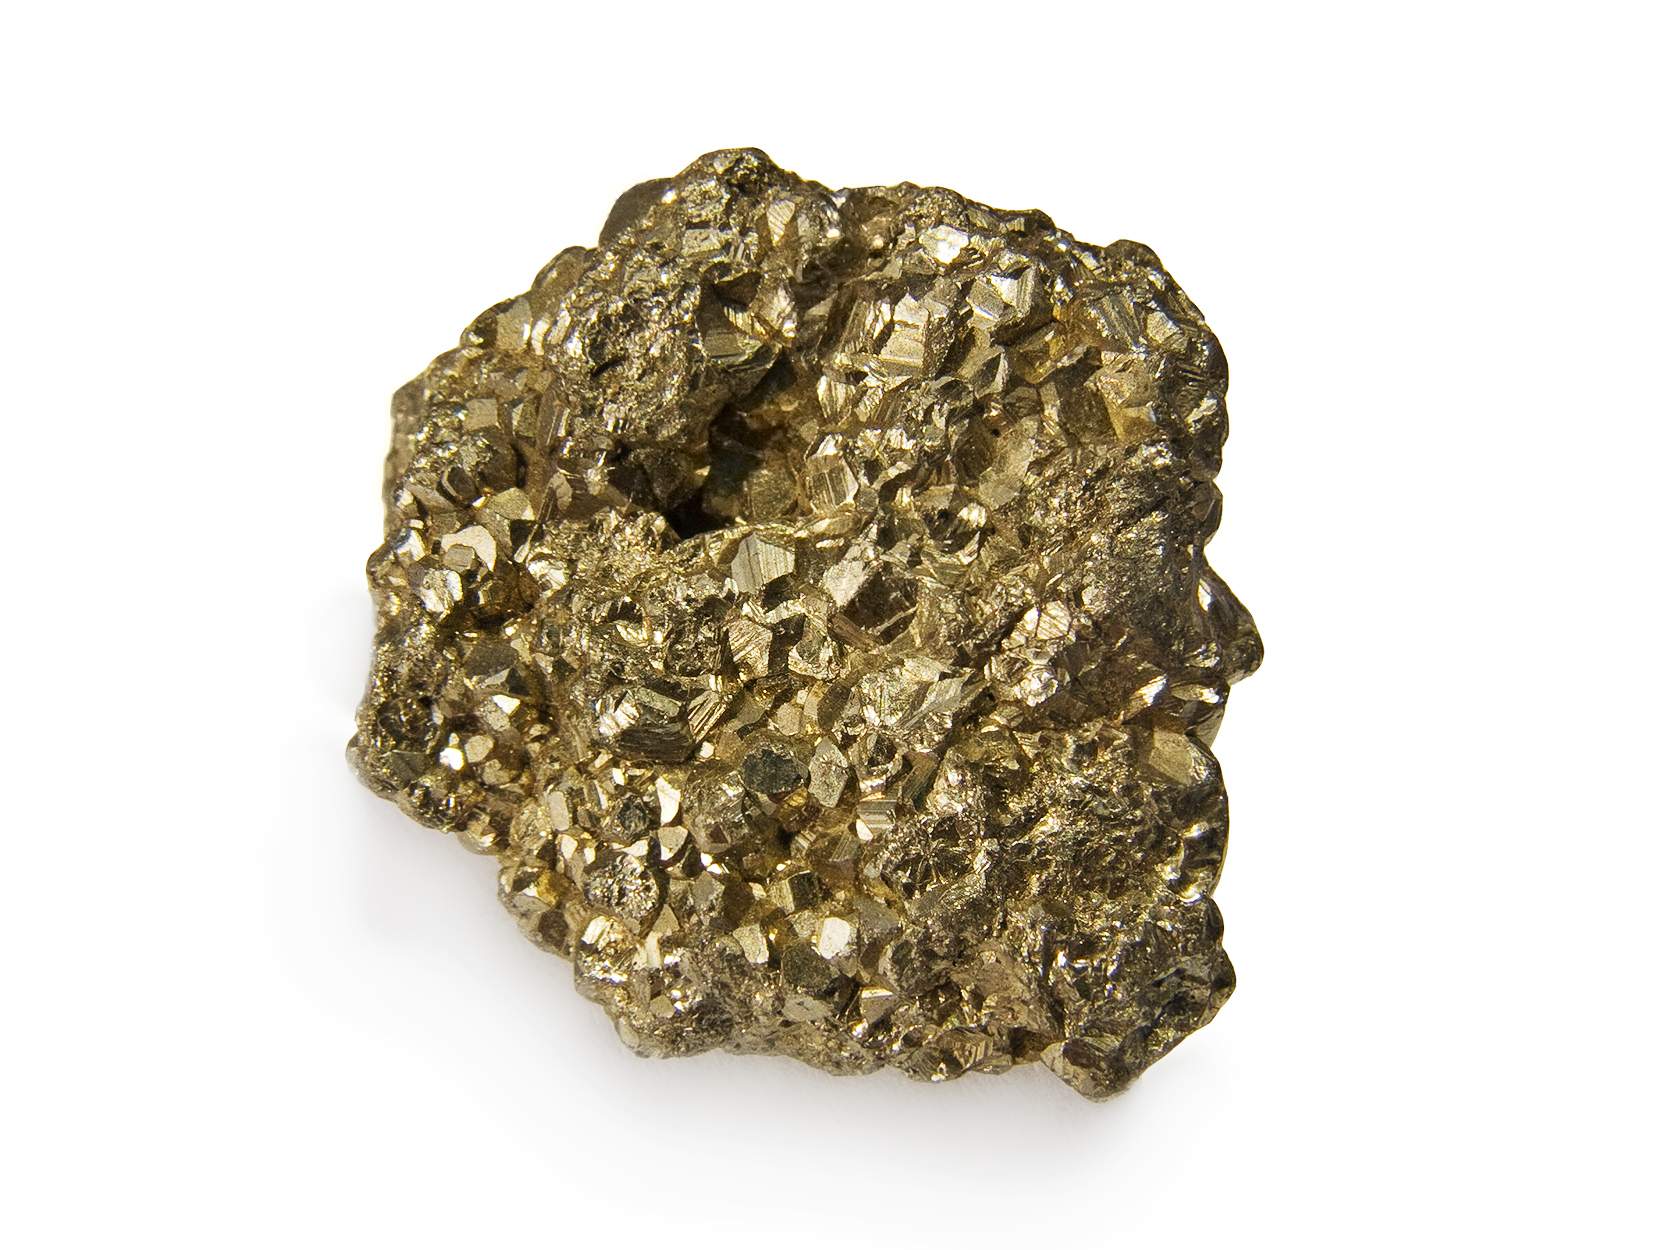 File:Pyrite crystals.jpg - Wikimedia Commons